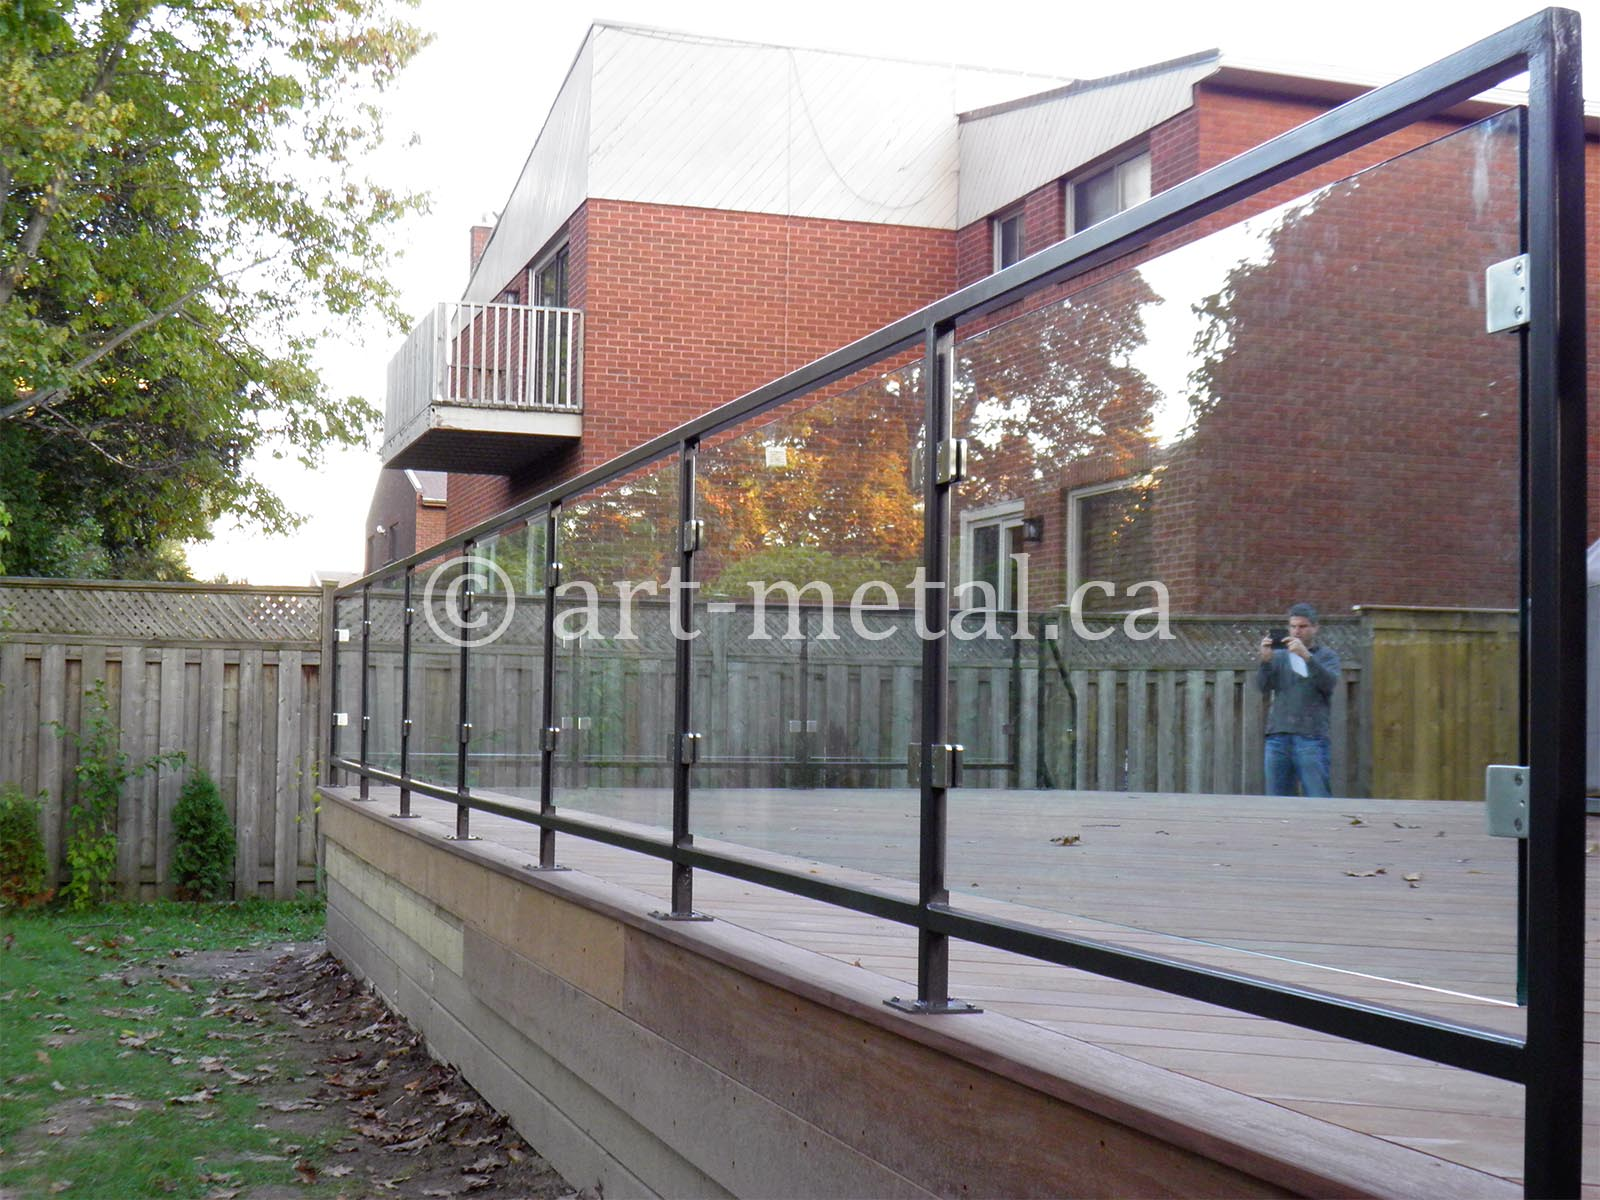 glass railings for decks in toronto and